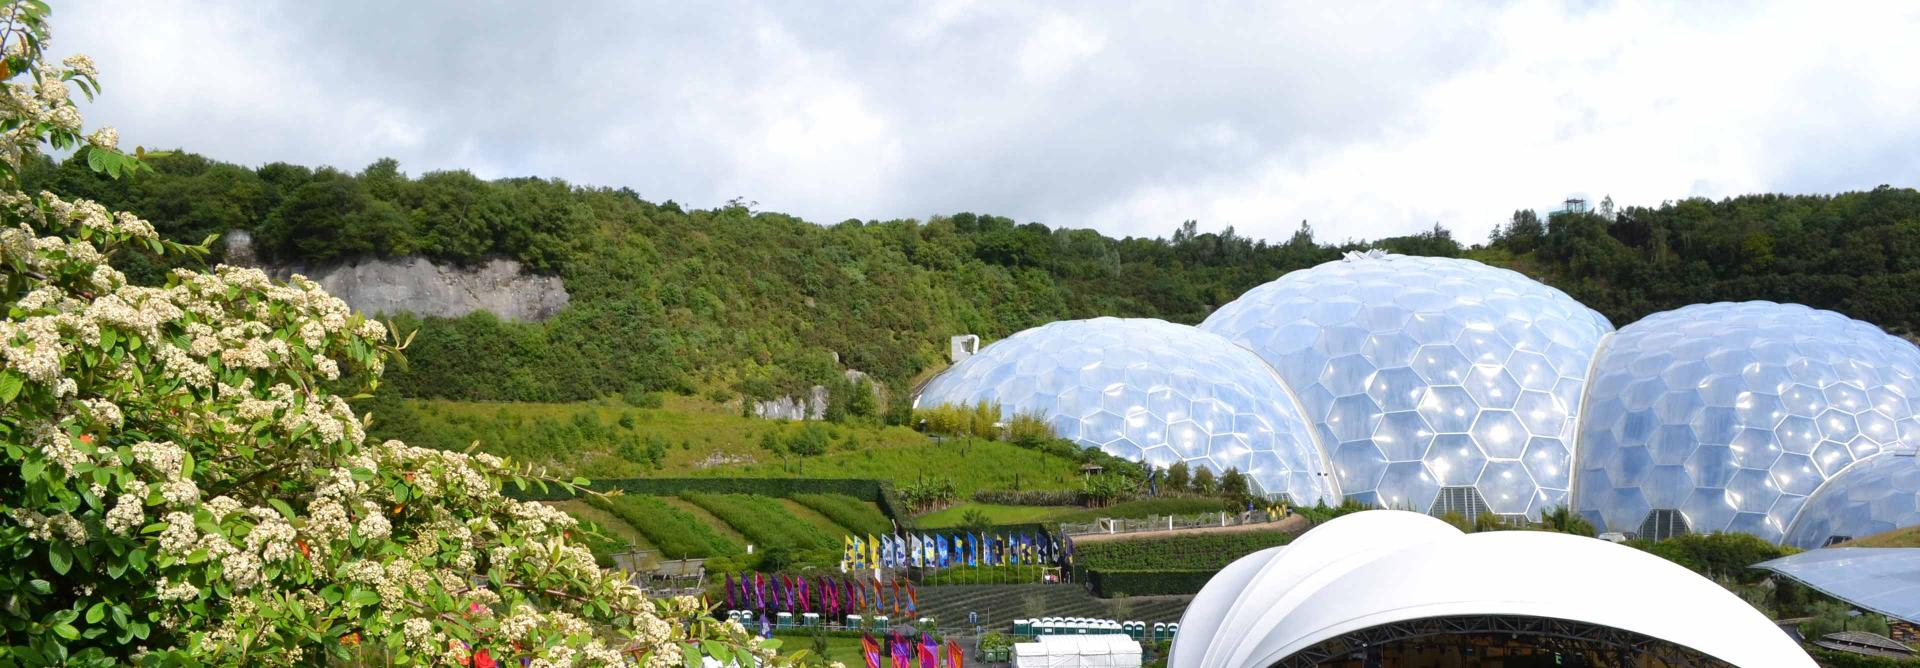 Mind Hike Eden Project